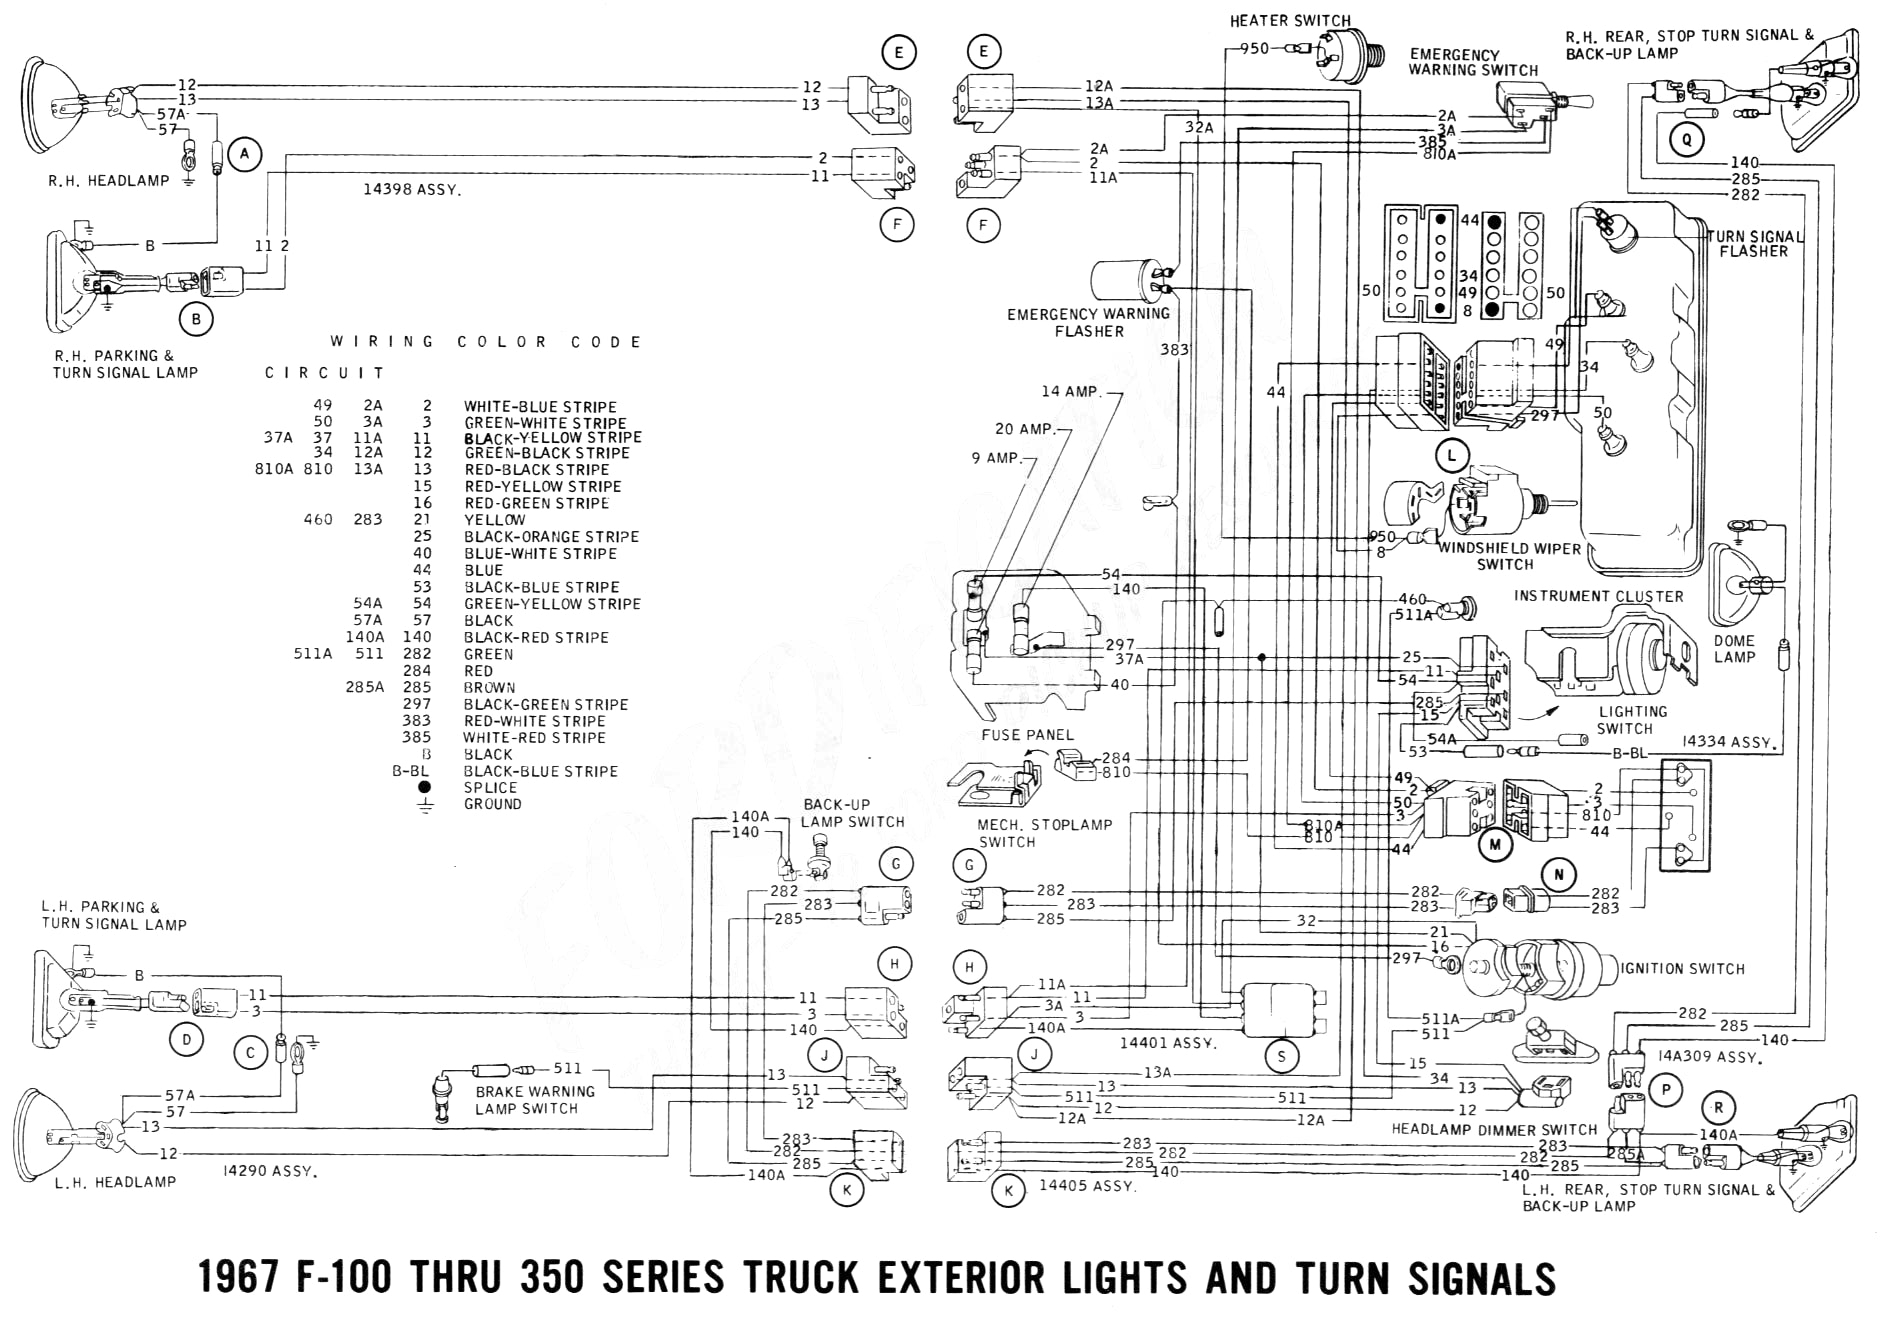 Ford F650 Wiring Diagram - ford F650 Wiring Diagram ford F350 1986 Ignition Wiring  Diagram 1986